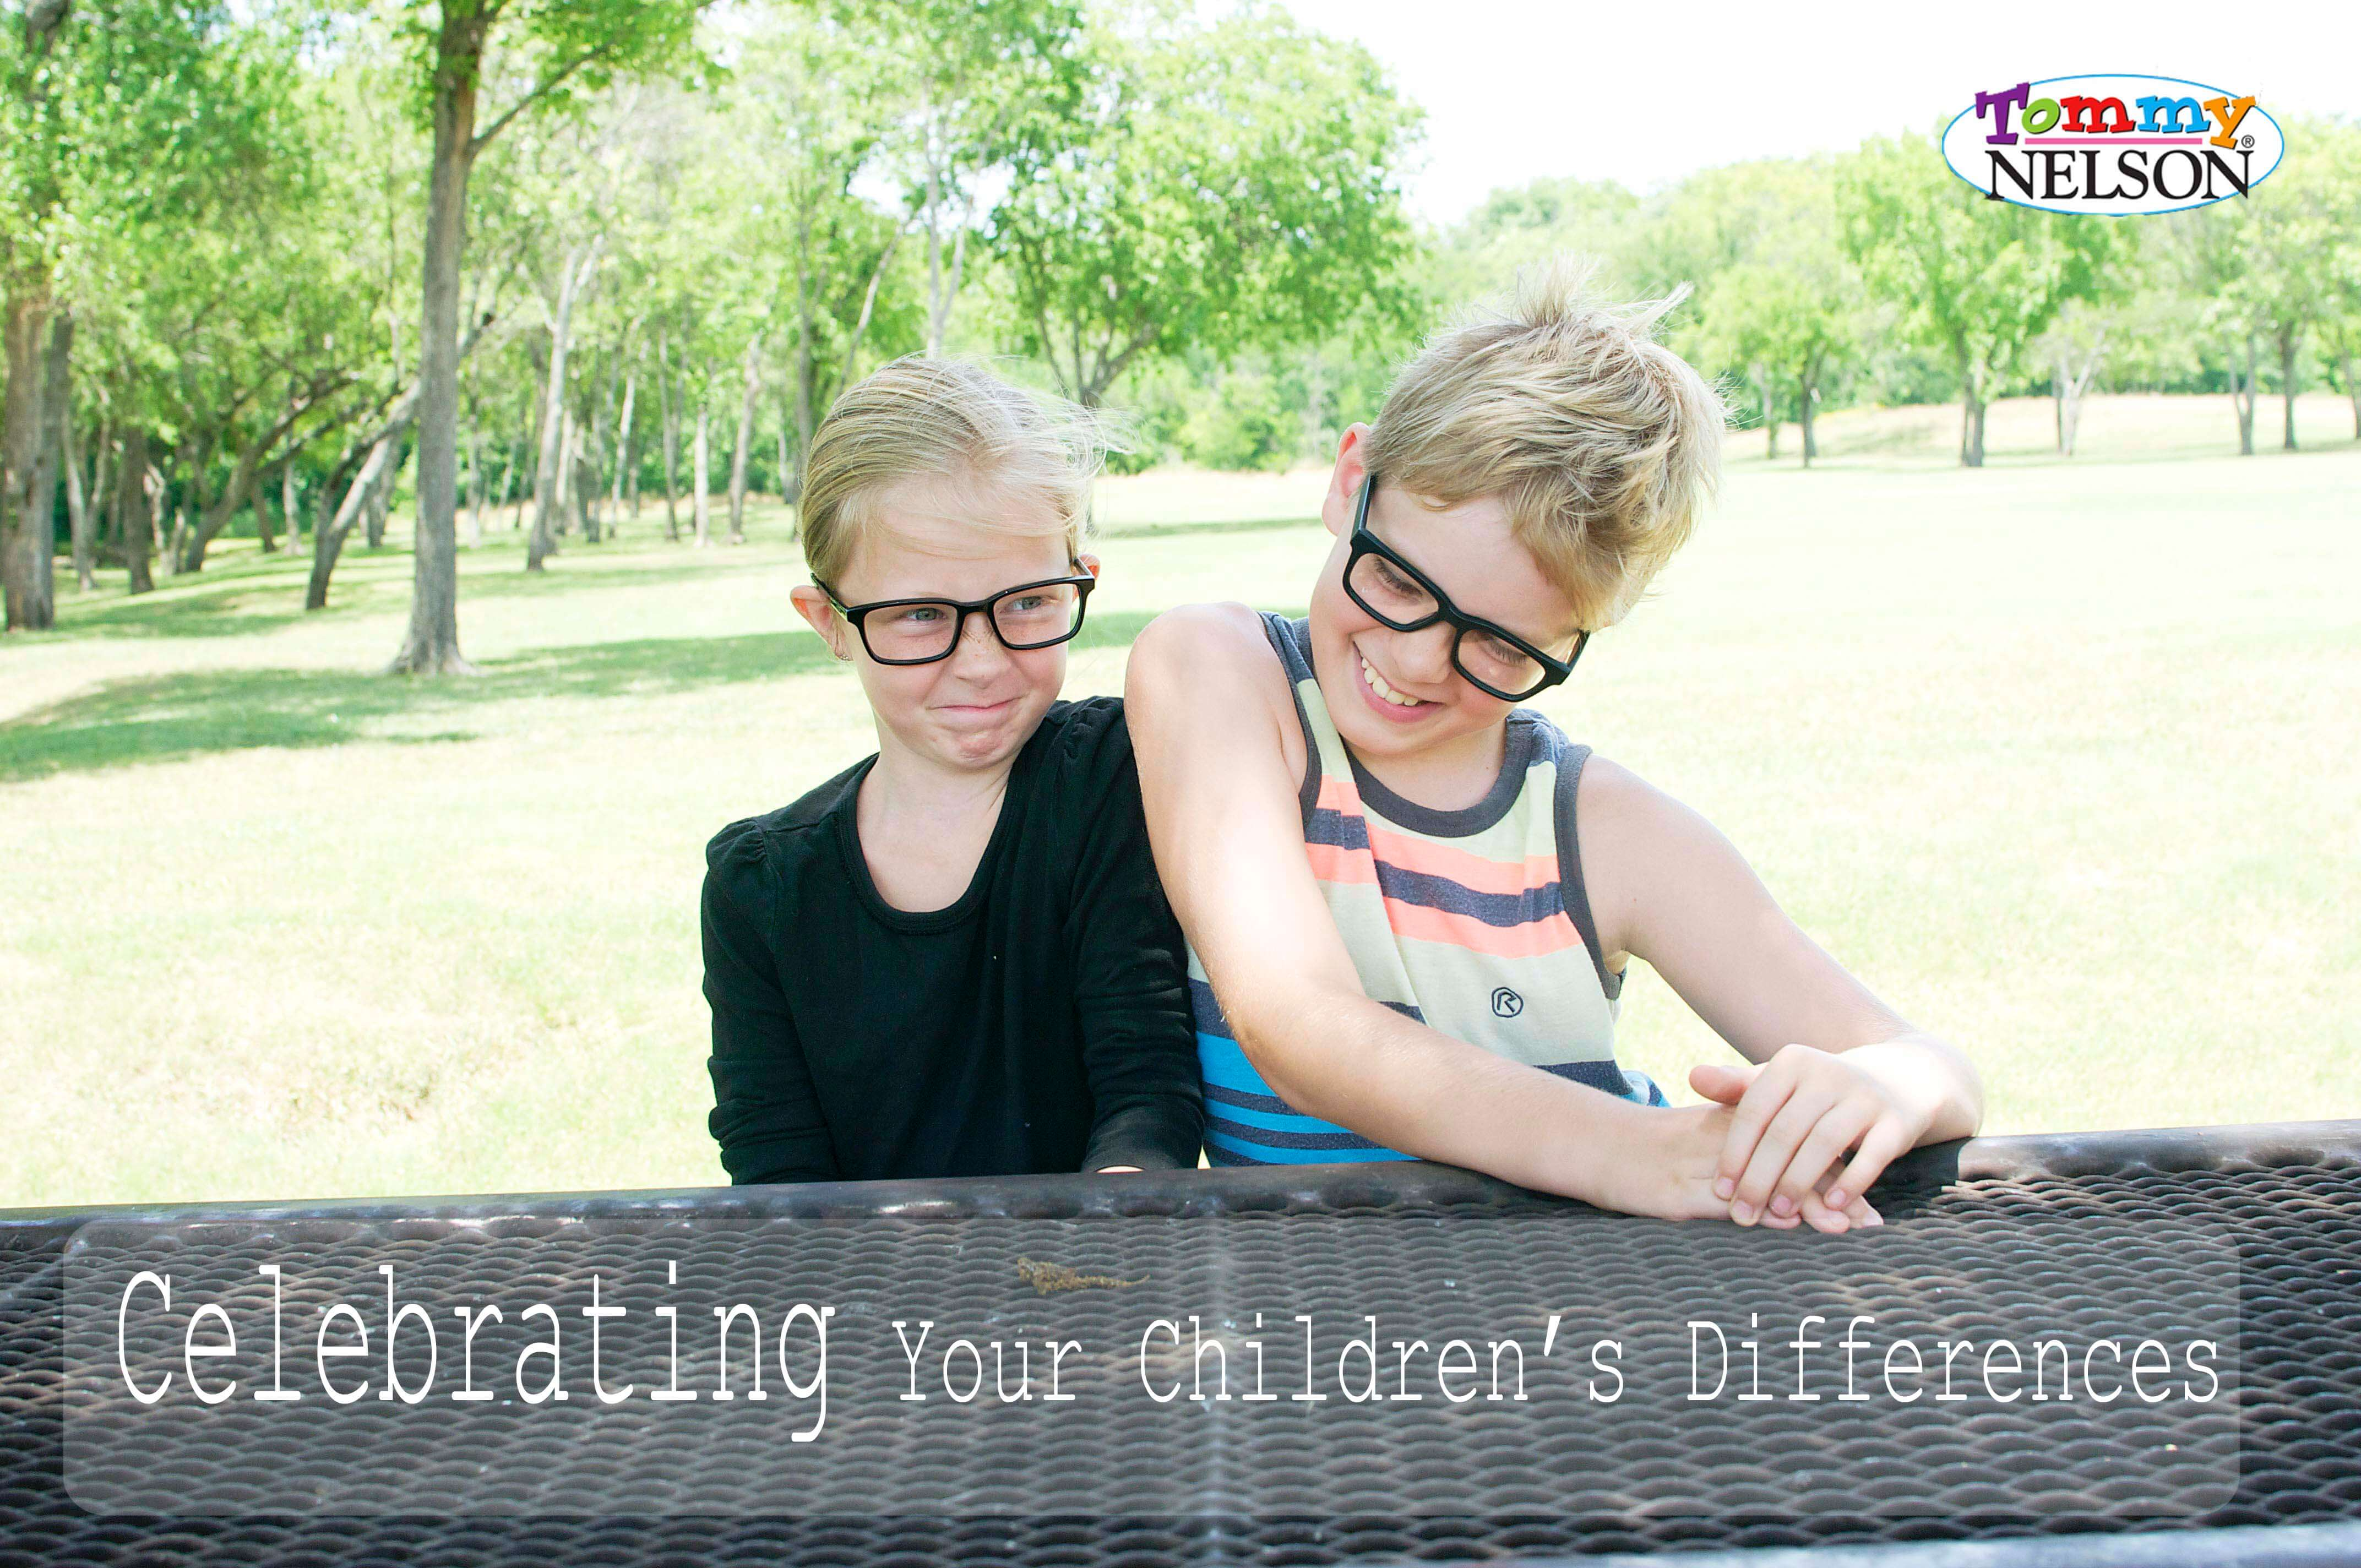 Tommy Nelson Mommy Jen Price shares 3 ways that she celebrates her children's differences.